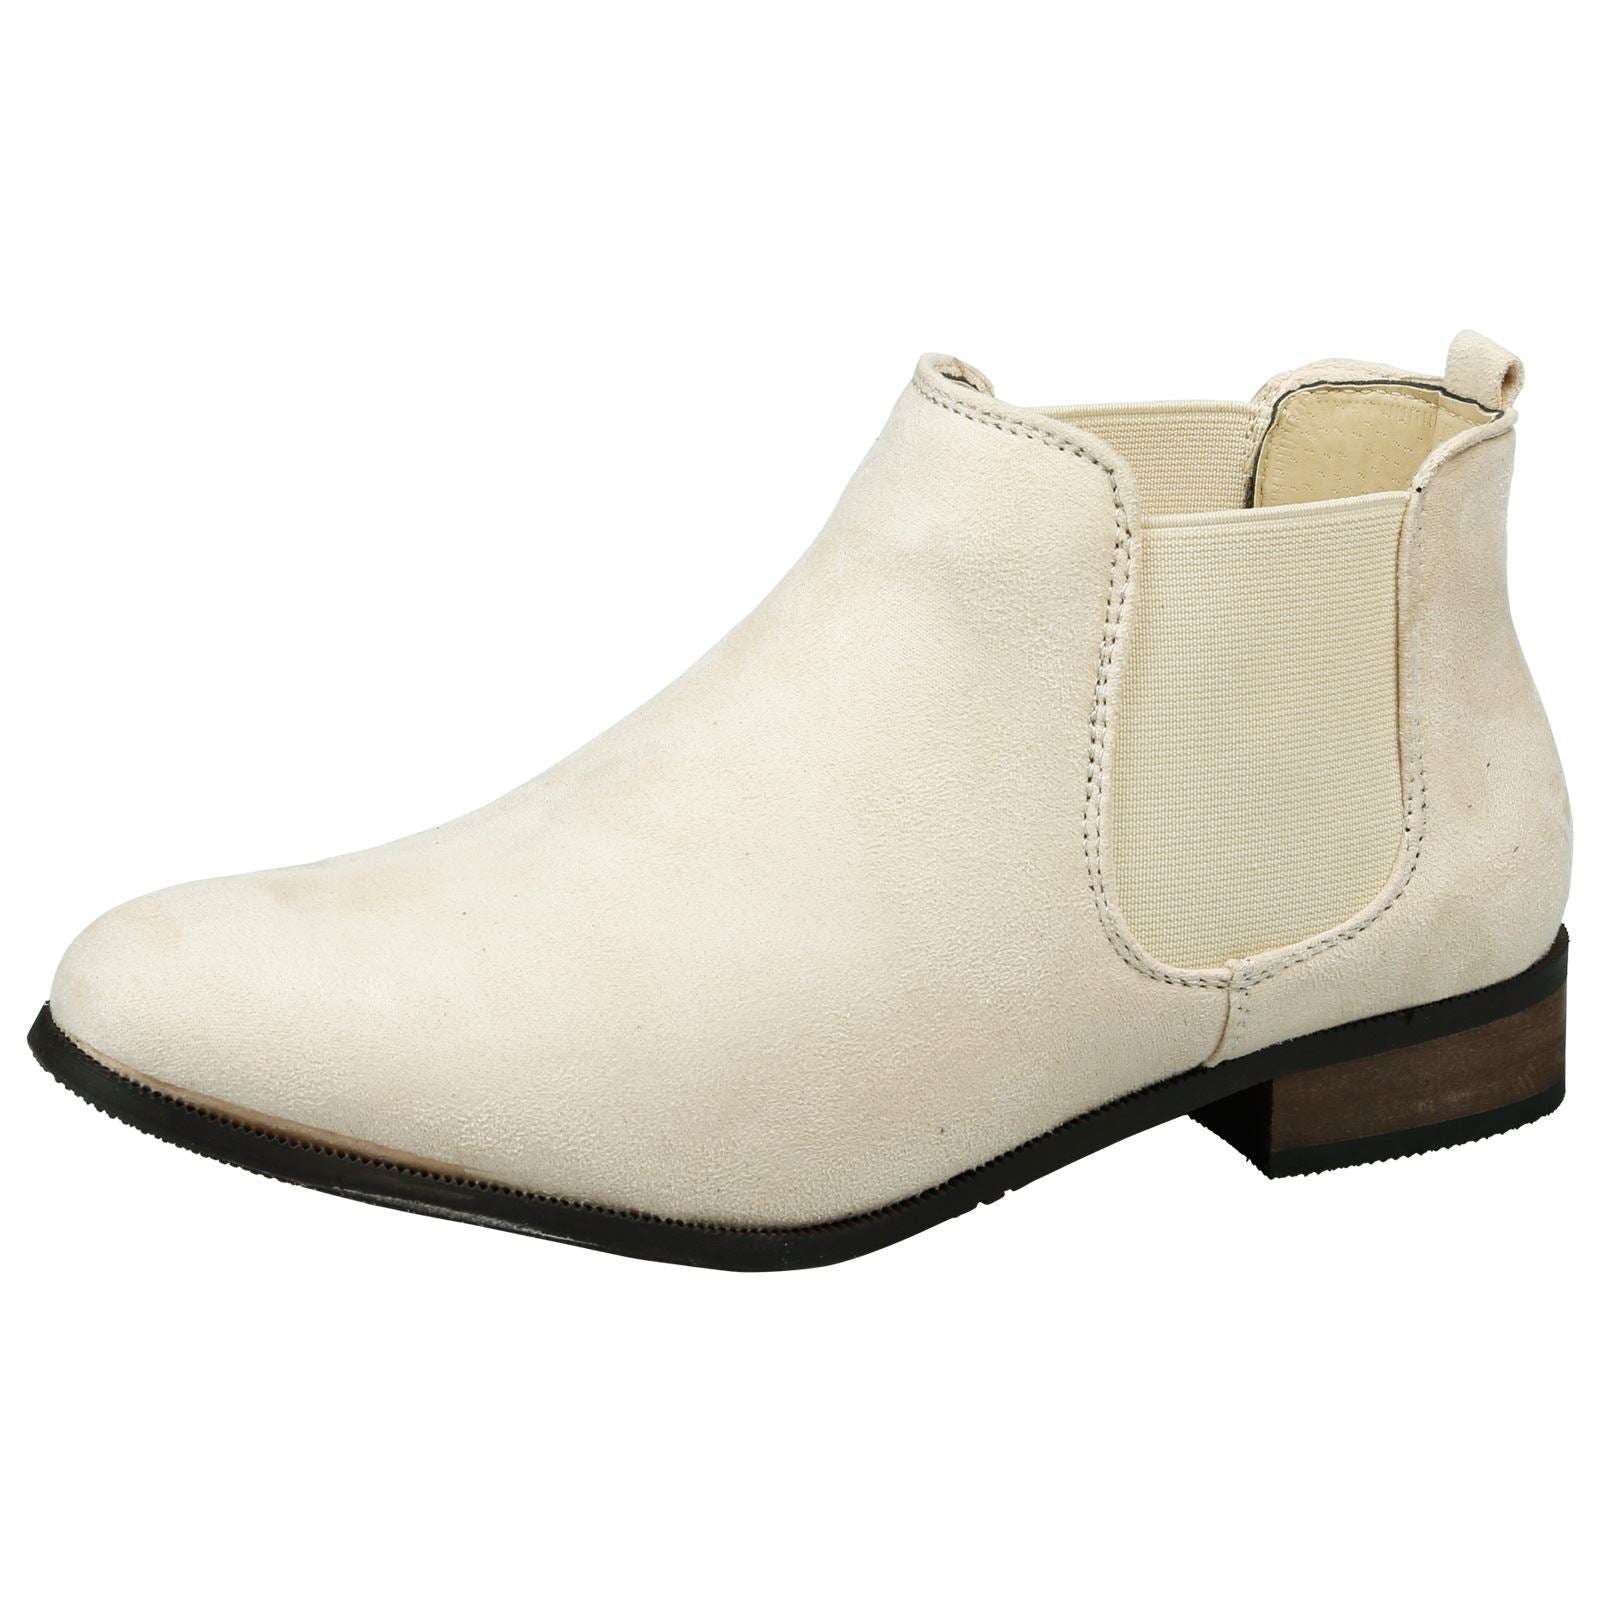 Emma Classic Chelsea Boots in Beige Faux Suede